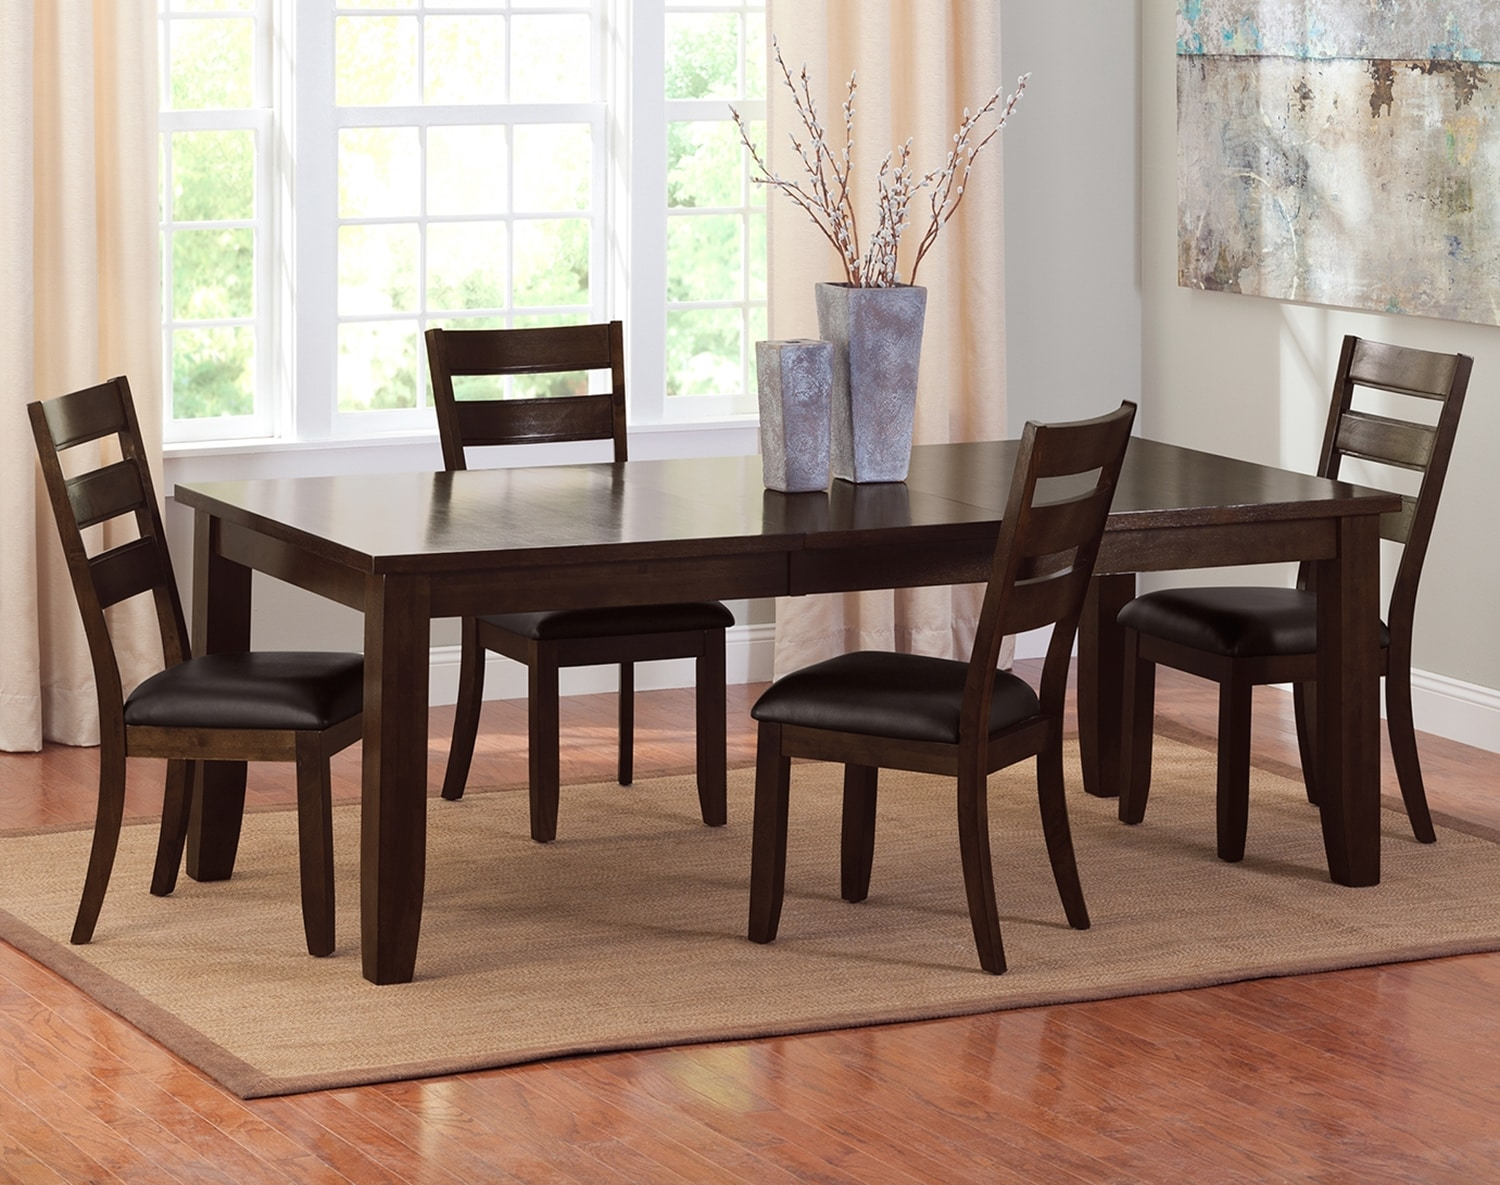 American Signature Dining Room Sets Value City Chairs